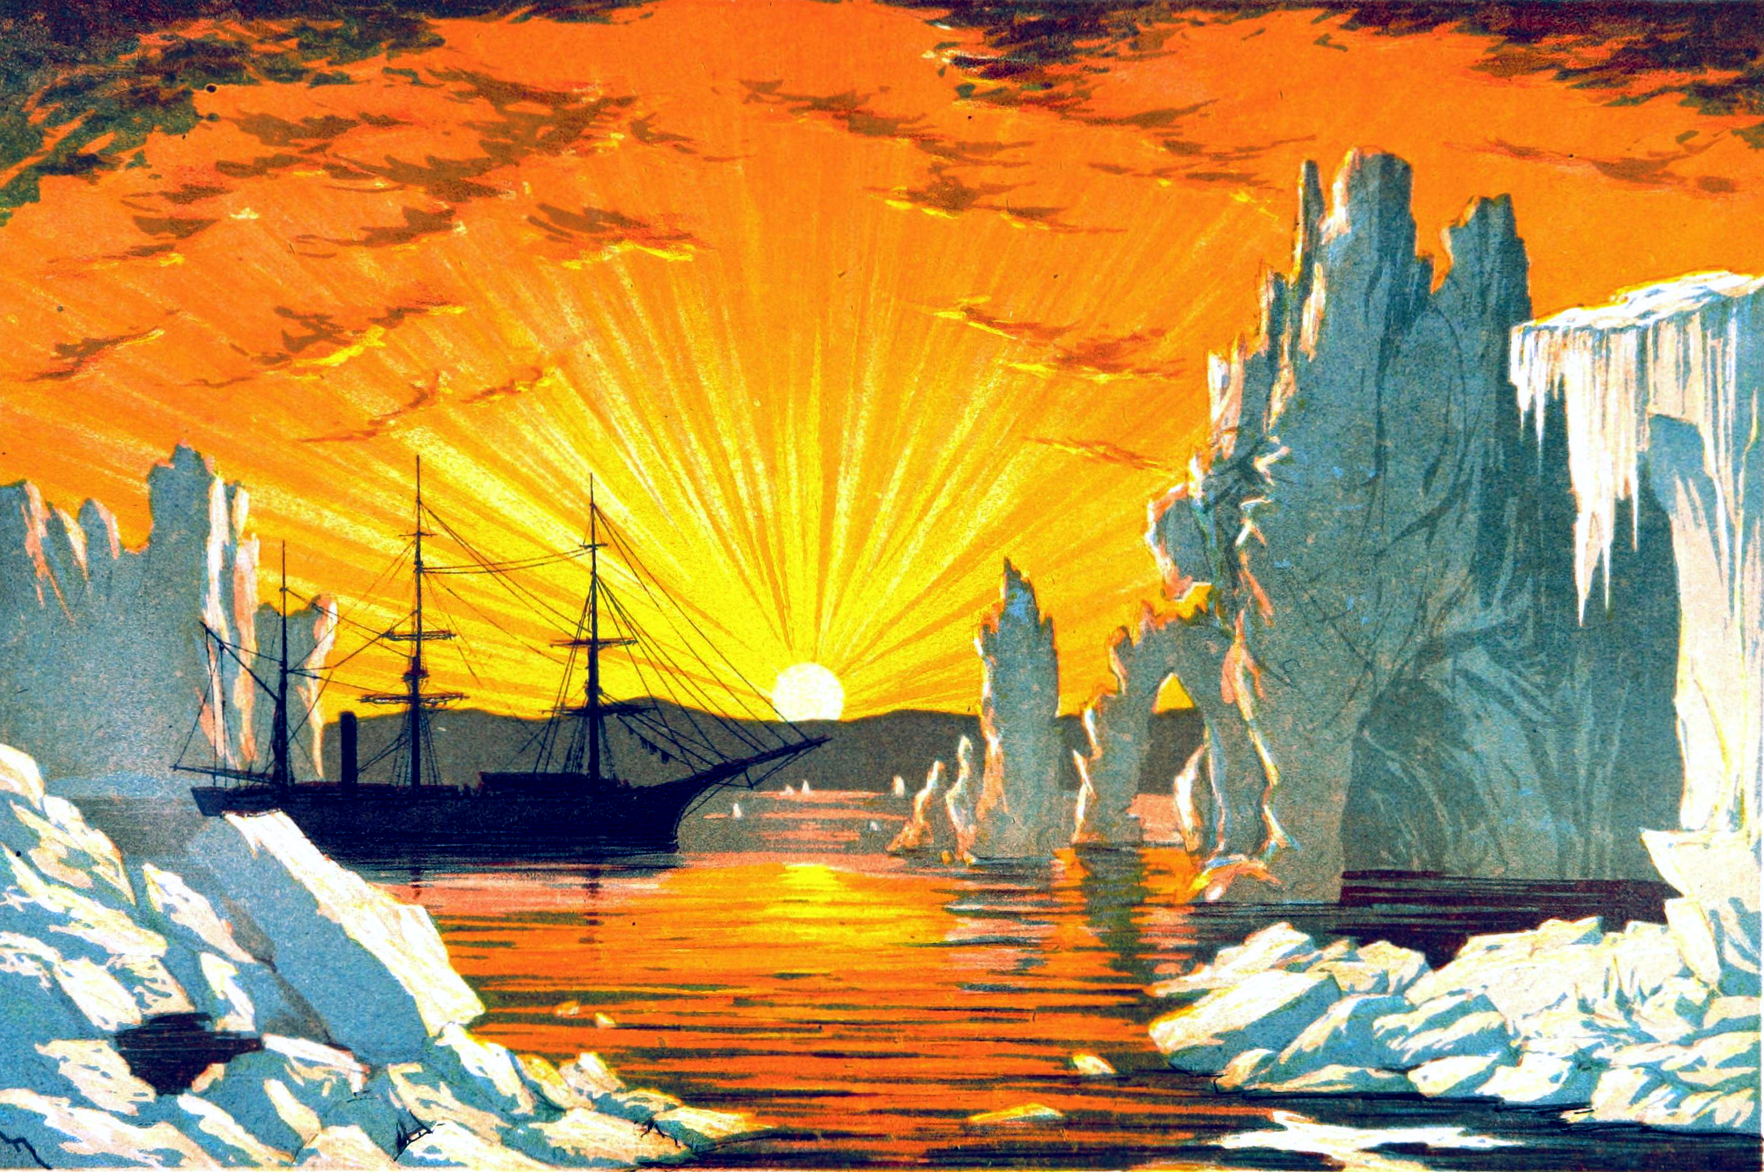 19th Century glacier and iceberg illustration with bright sunset. A free public domain image.